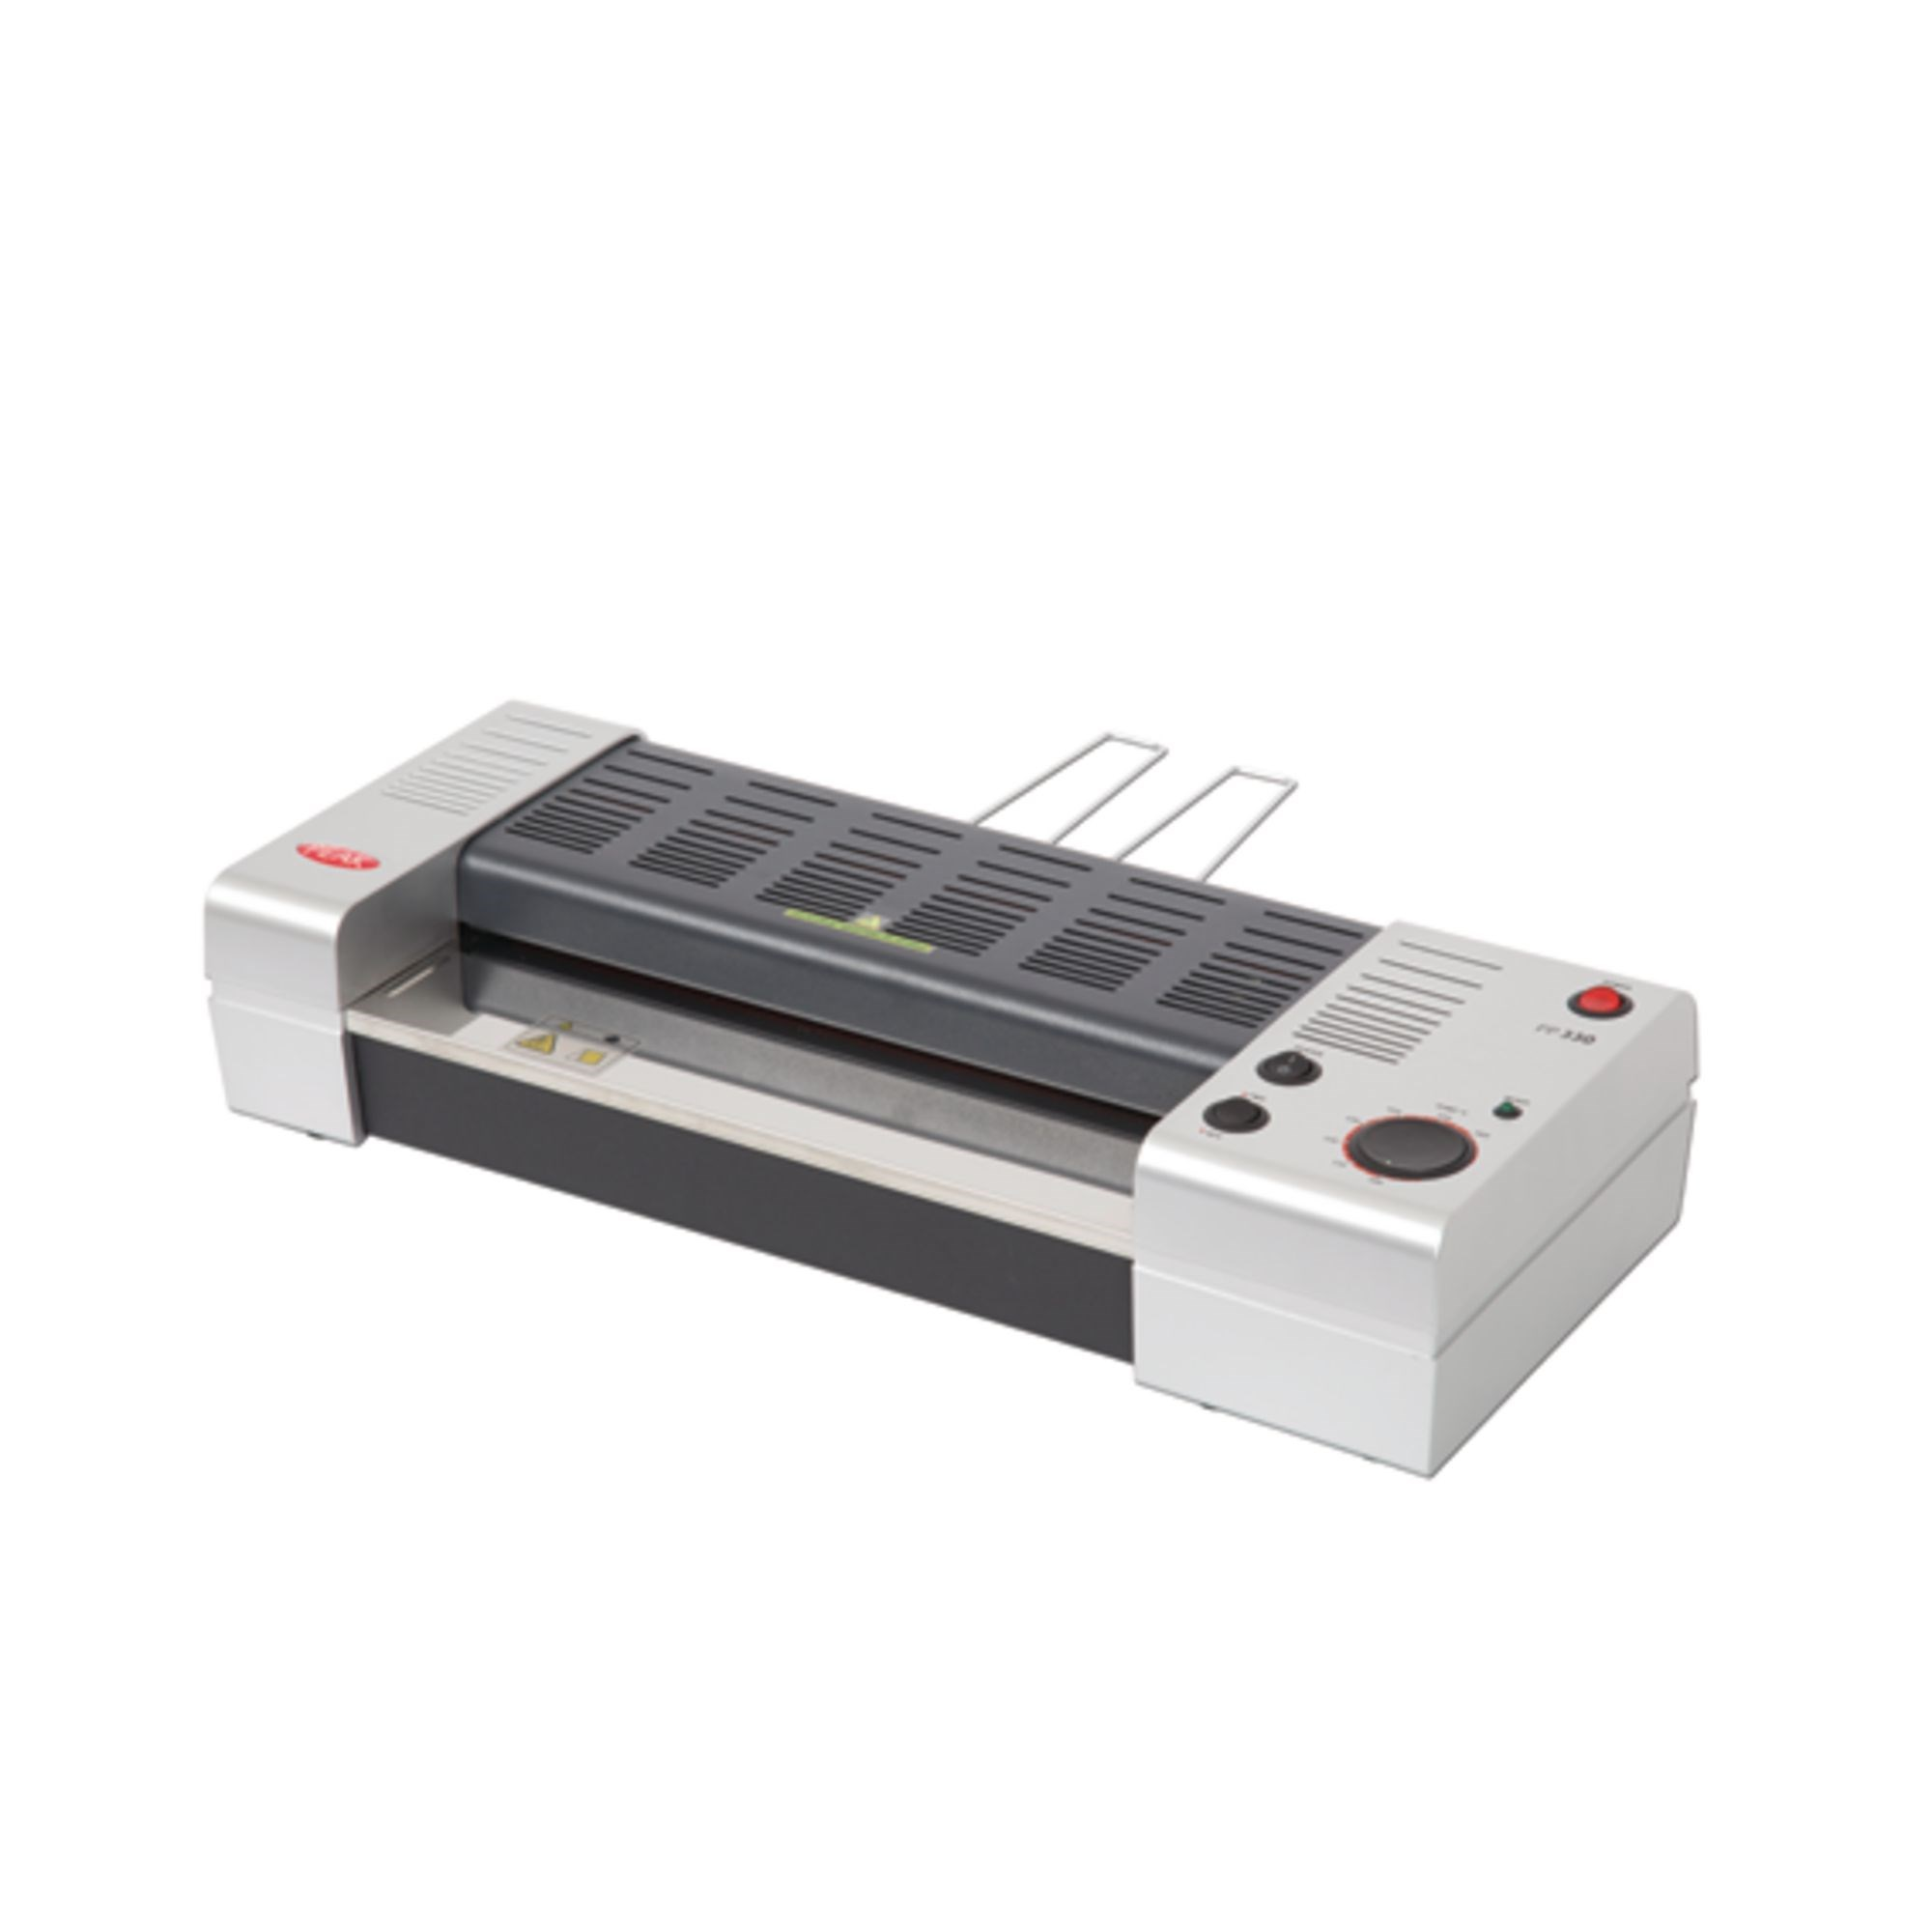 Peak Laminators - PP330 A3